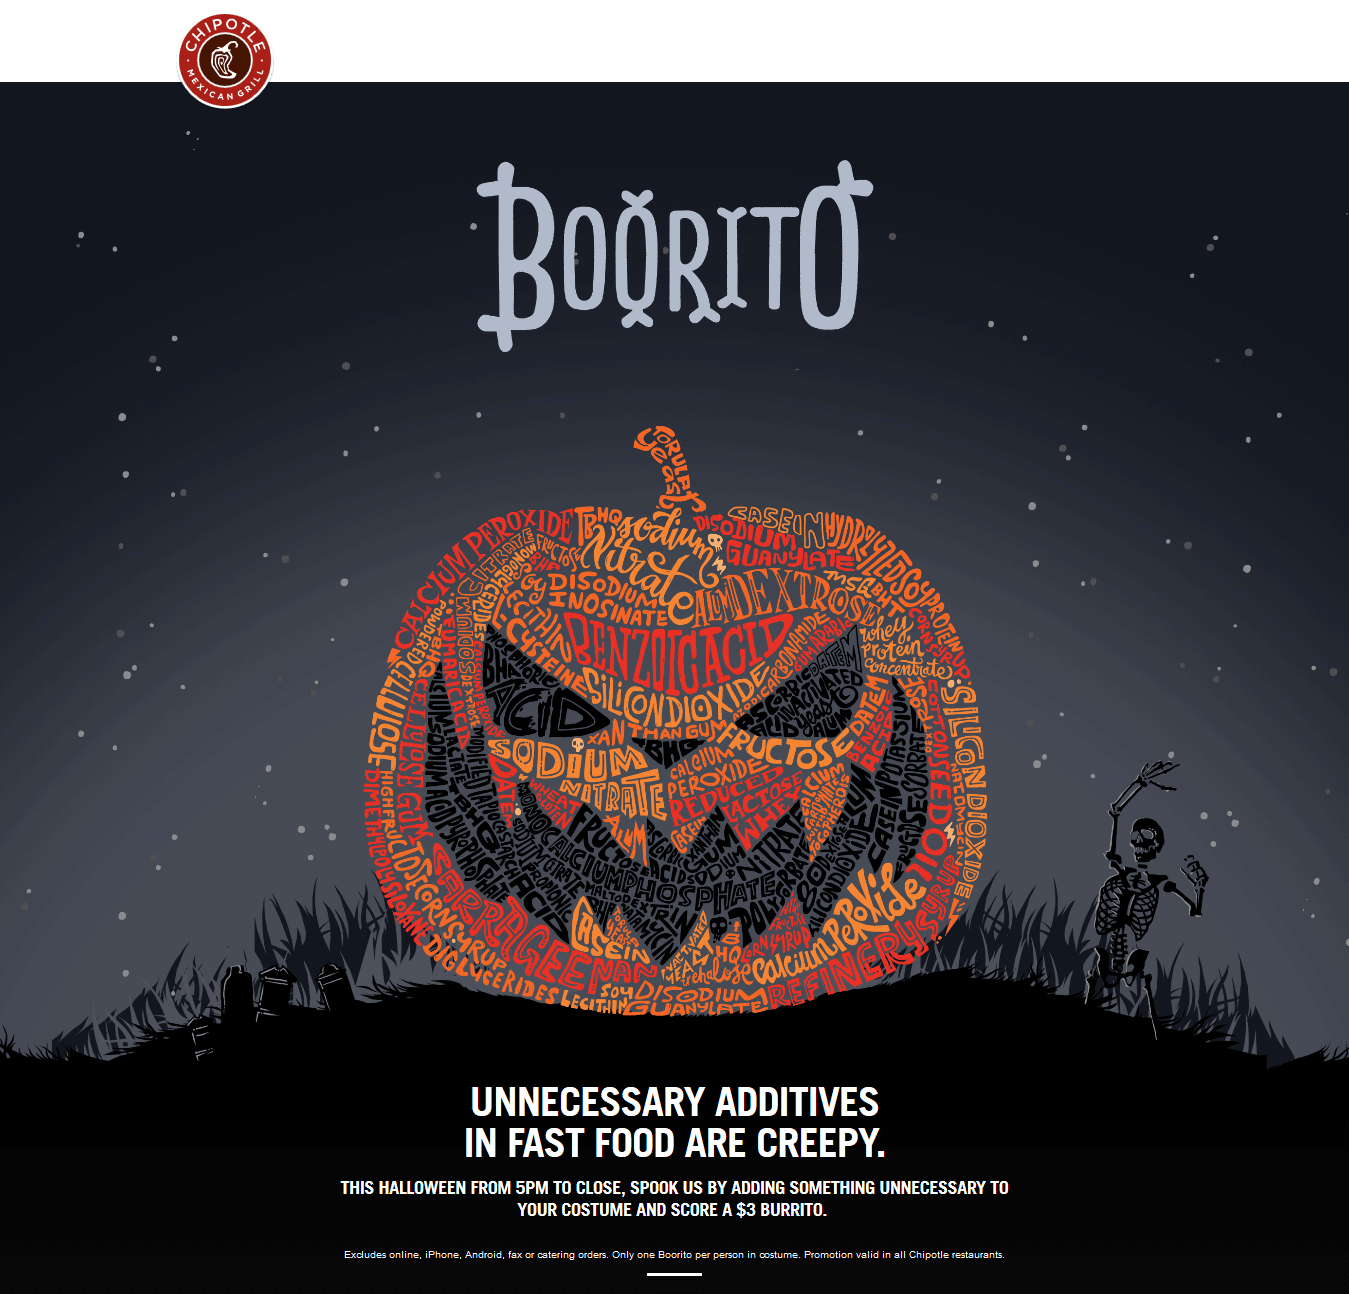 Chipotle Coupon January 2018 $3 burritos in costume Halloween at Chipotle